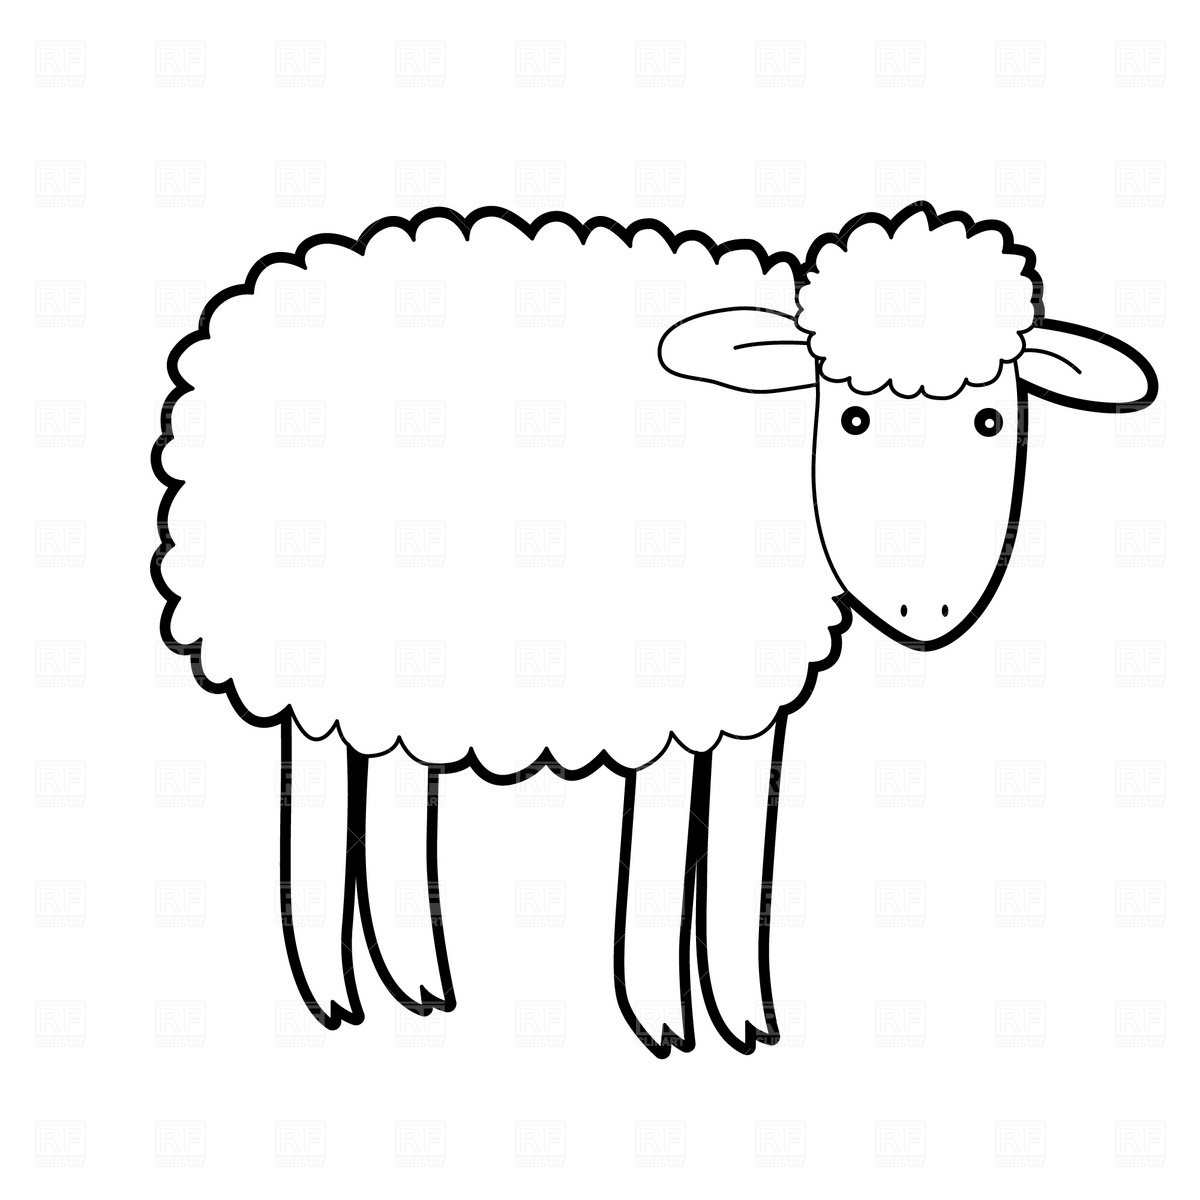 http://images.clipartpanda.com/lamb-clipart-black-and-white-lamb-clipart-cartoon-sheep-Download-Royalty-free-Vector-File-EPS-3294.jpg